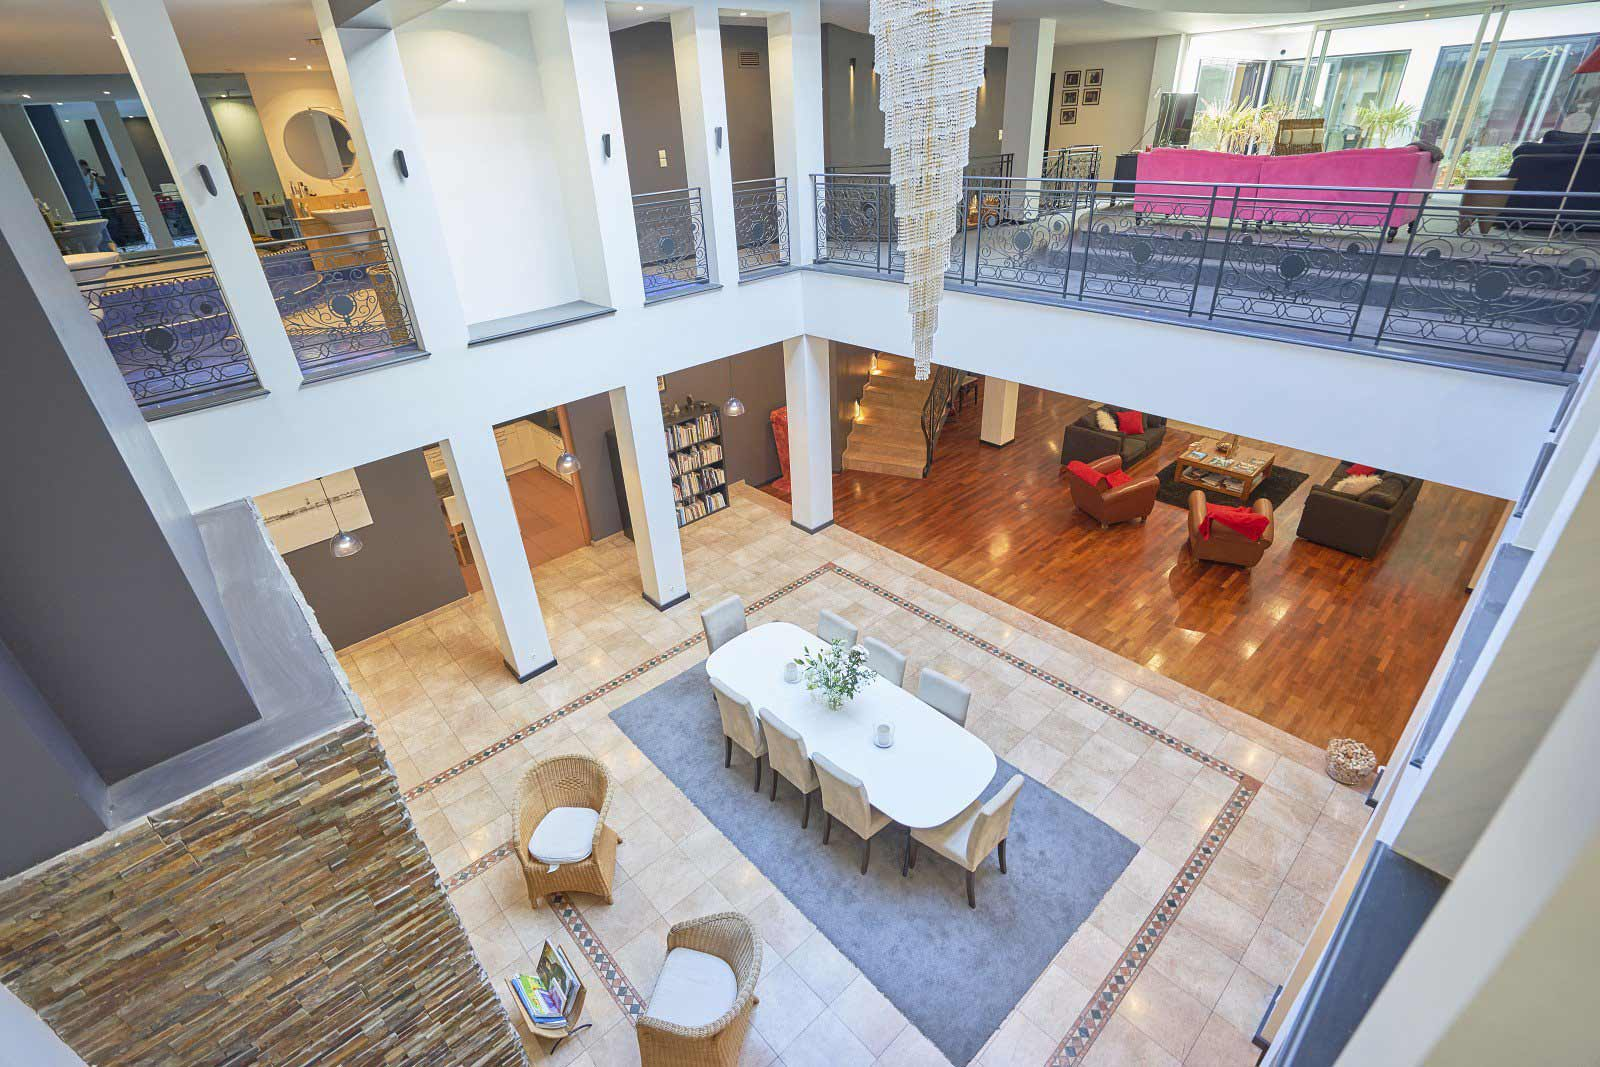 Lille - France - House, 8 rooms, 6 bedrooms - Slideshow Picture 1